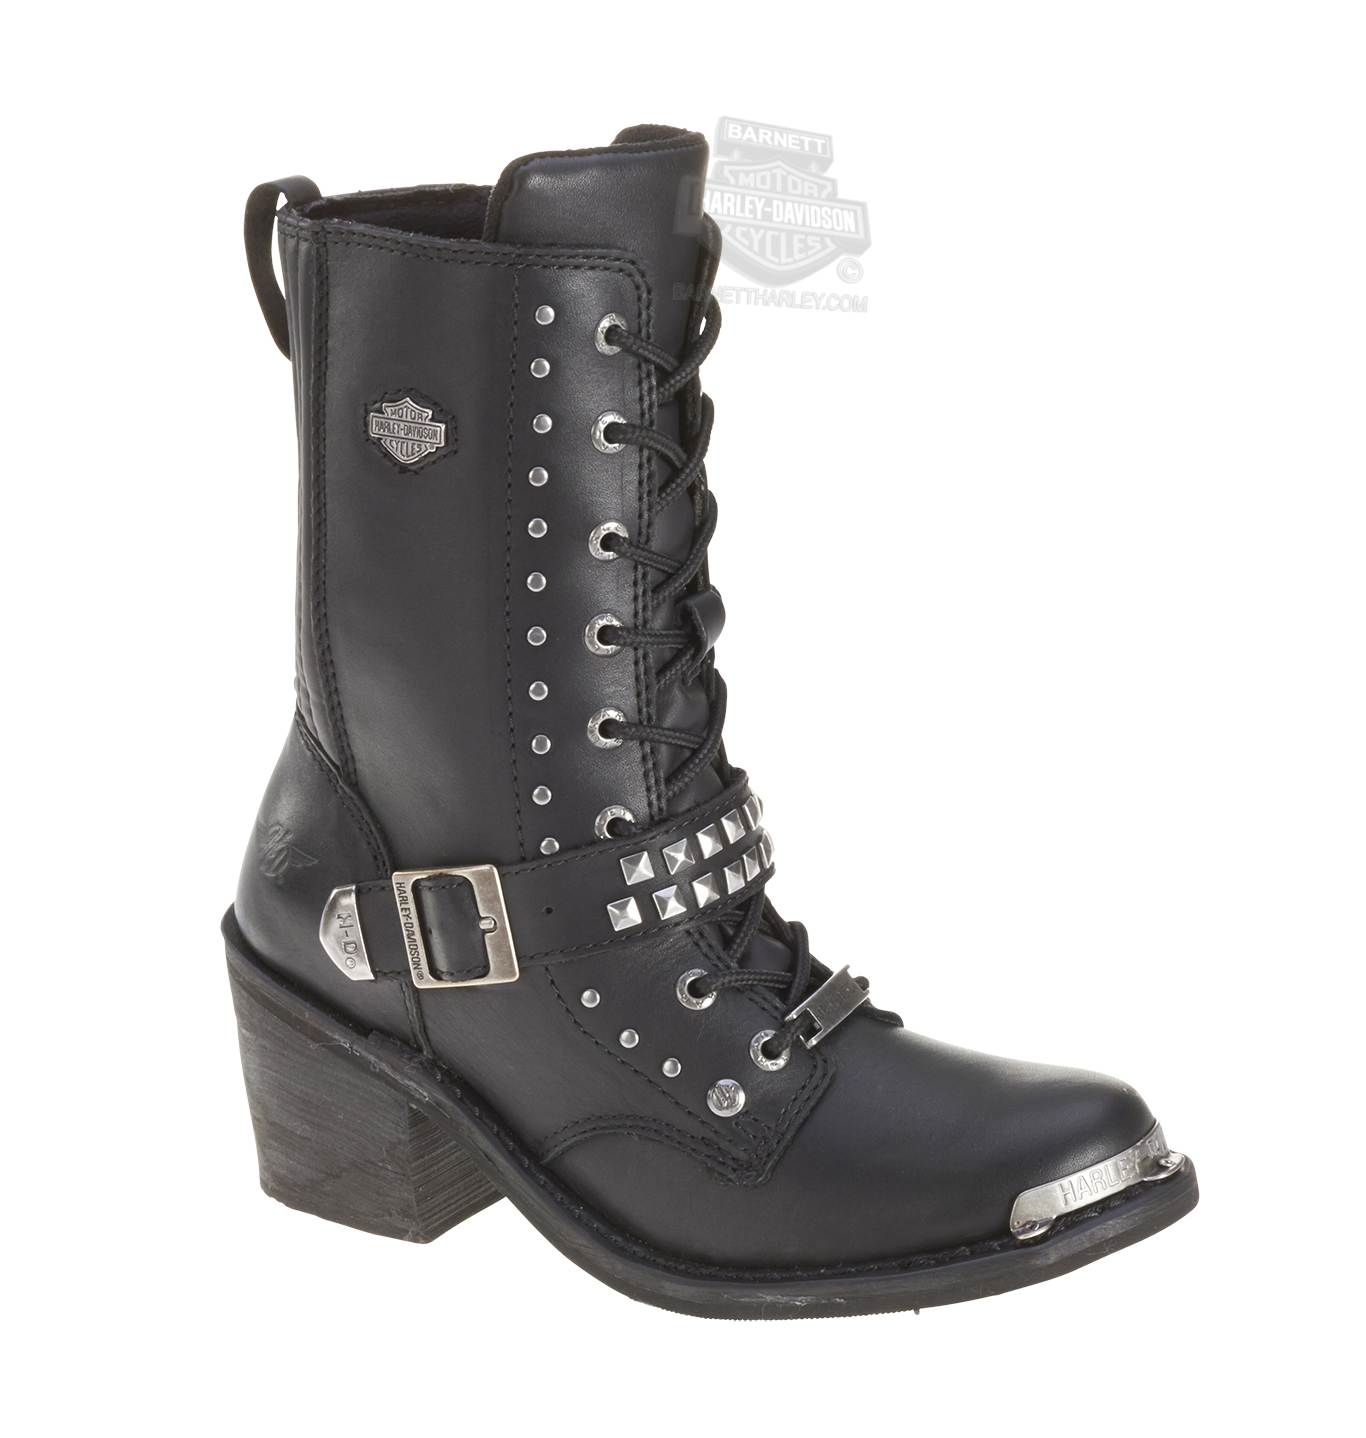 87046 harley davidson 174 womens angie black leather mid